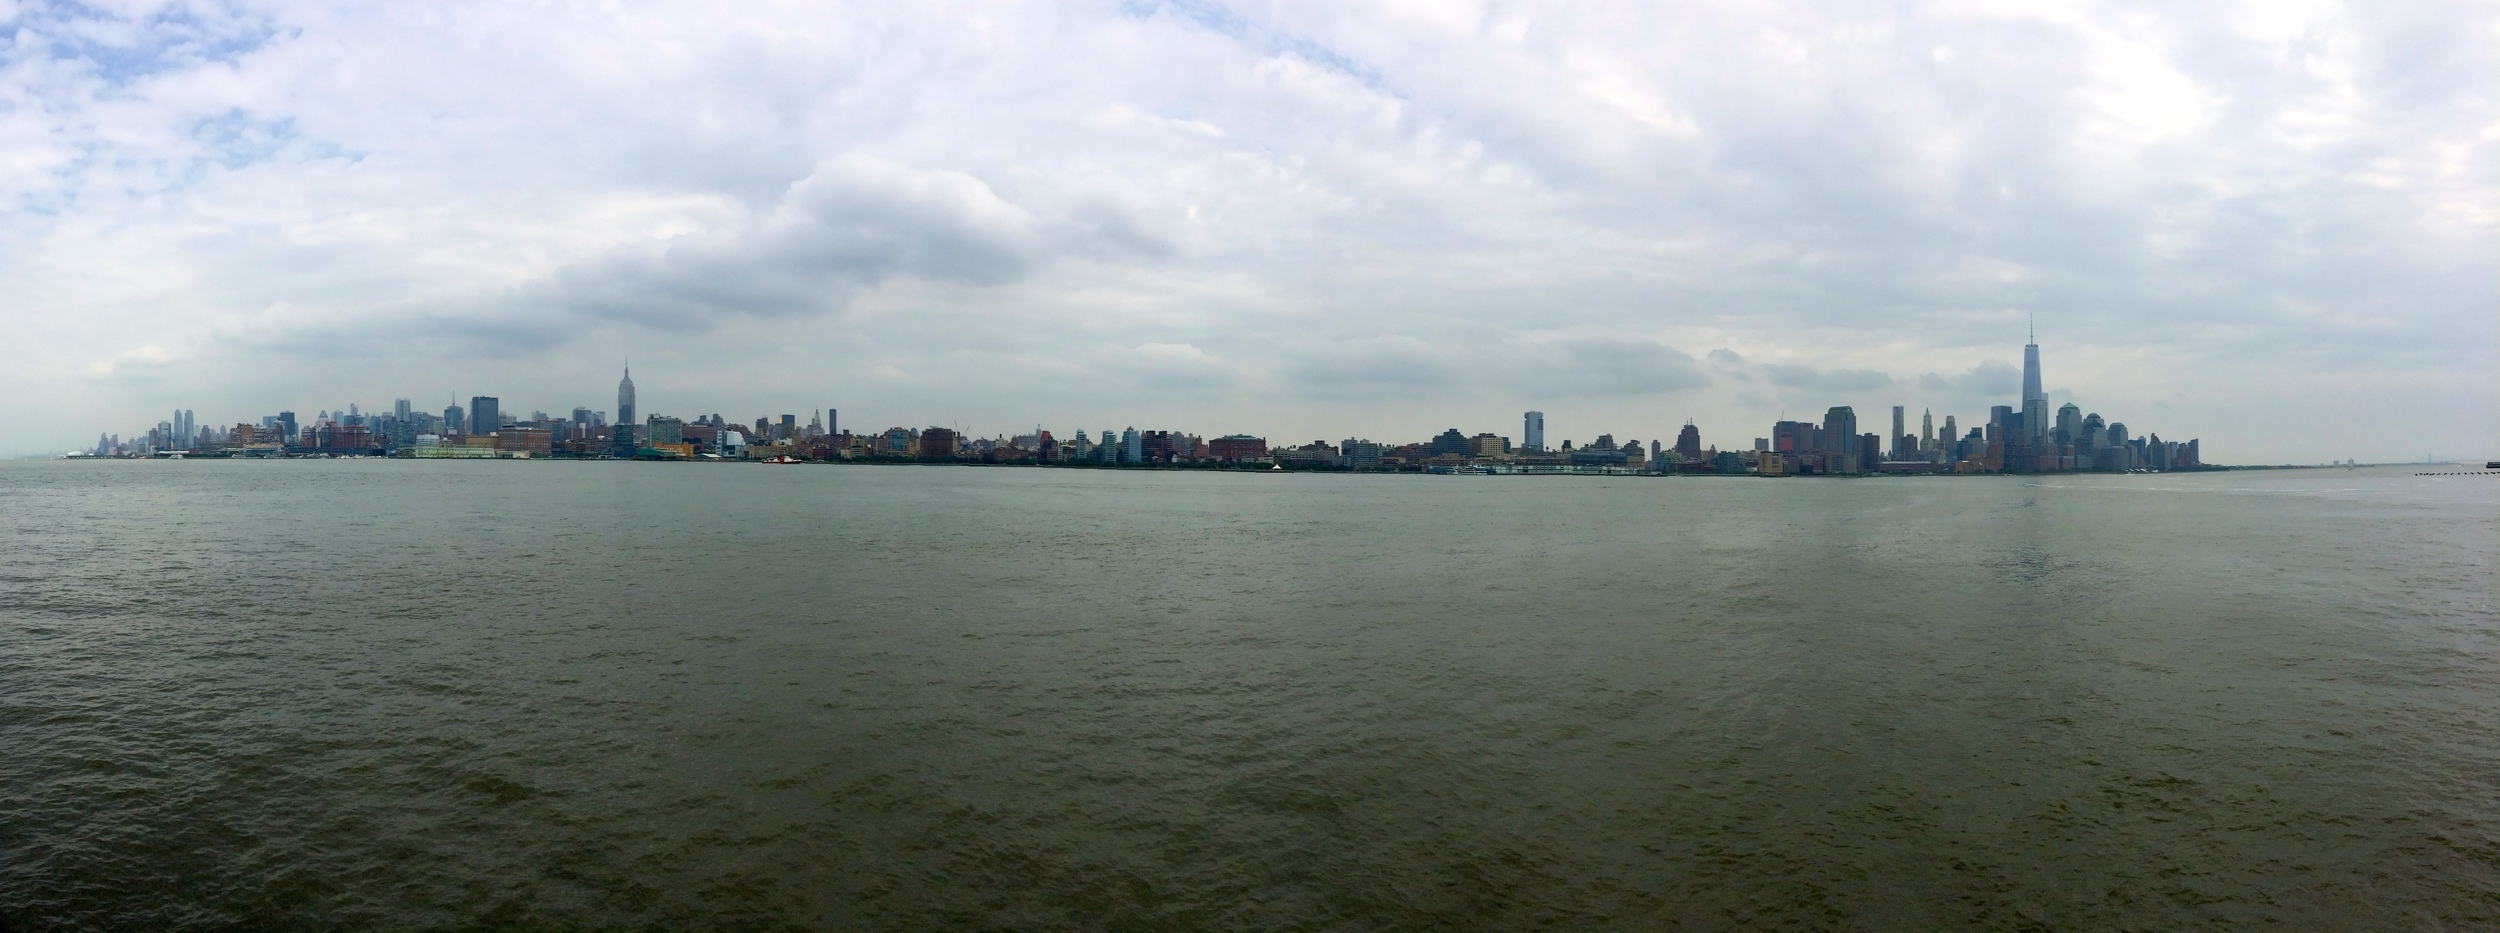 New York City Skyline from New Jersey Hoboken